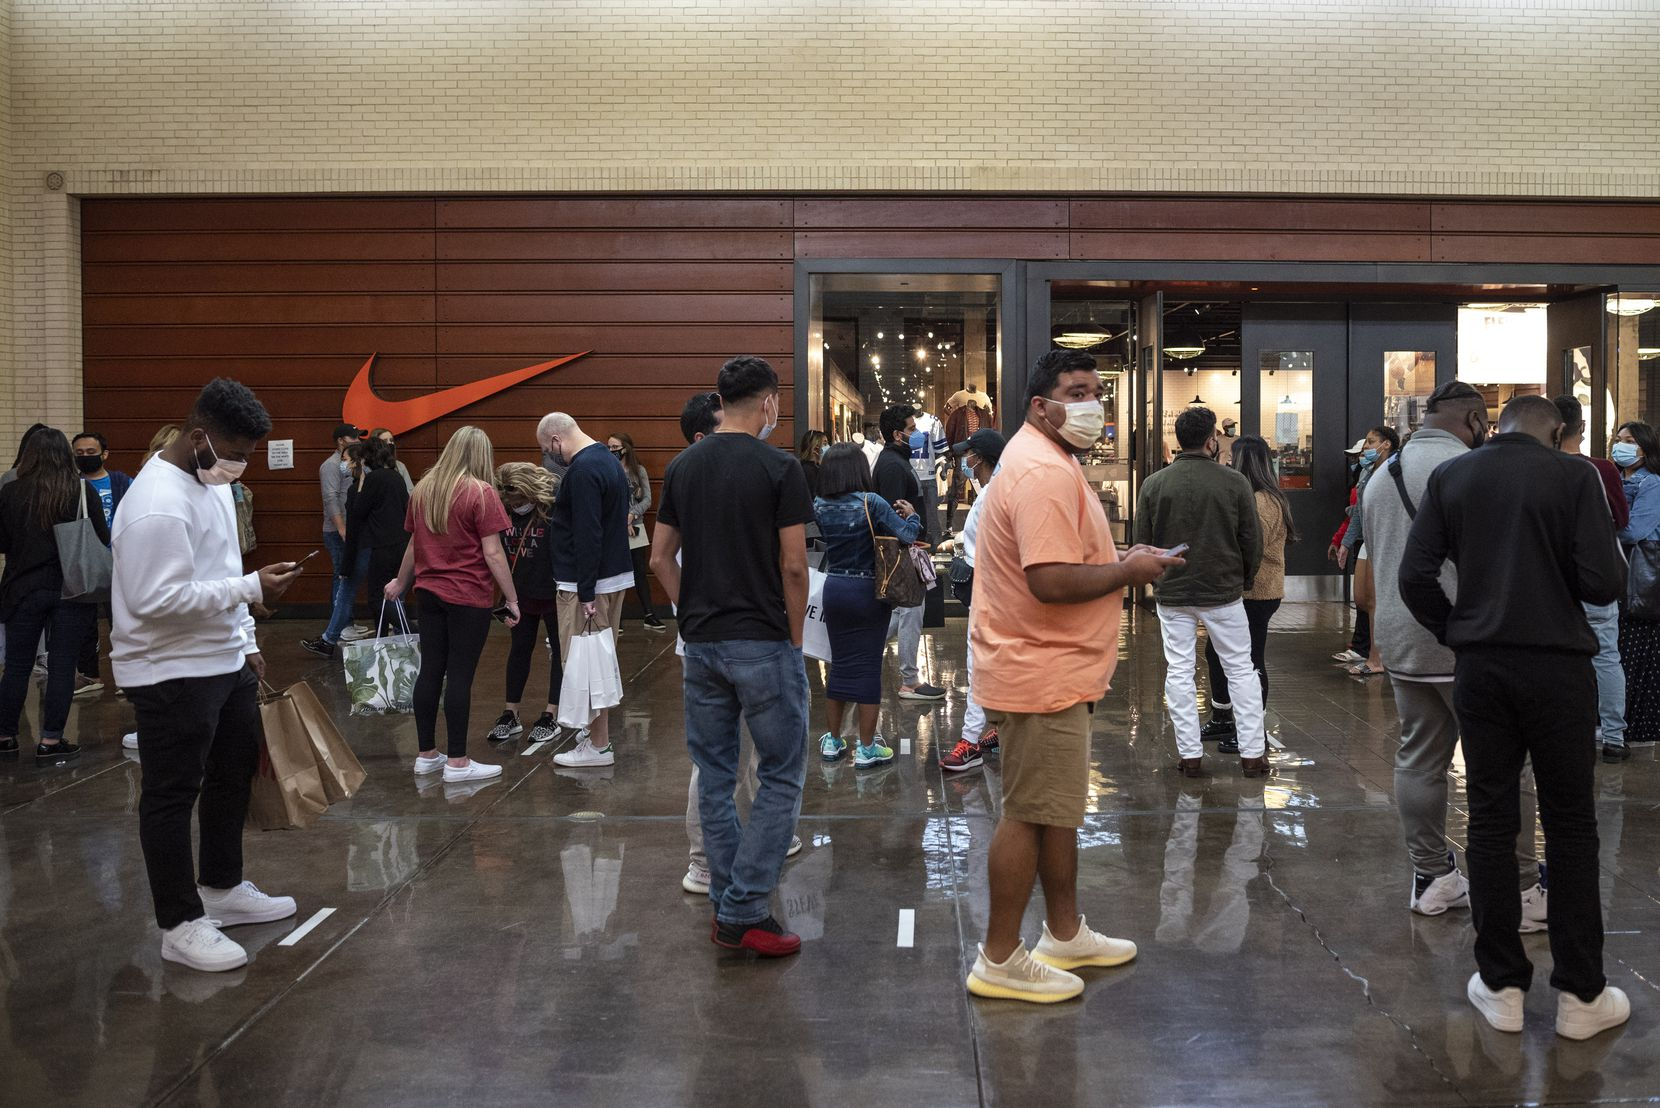 A long line of shoppers snakes in front of the Nike store during Black Friday at NorthPark Center in Dallas.